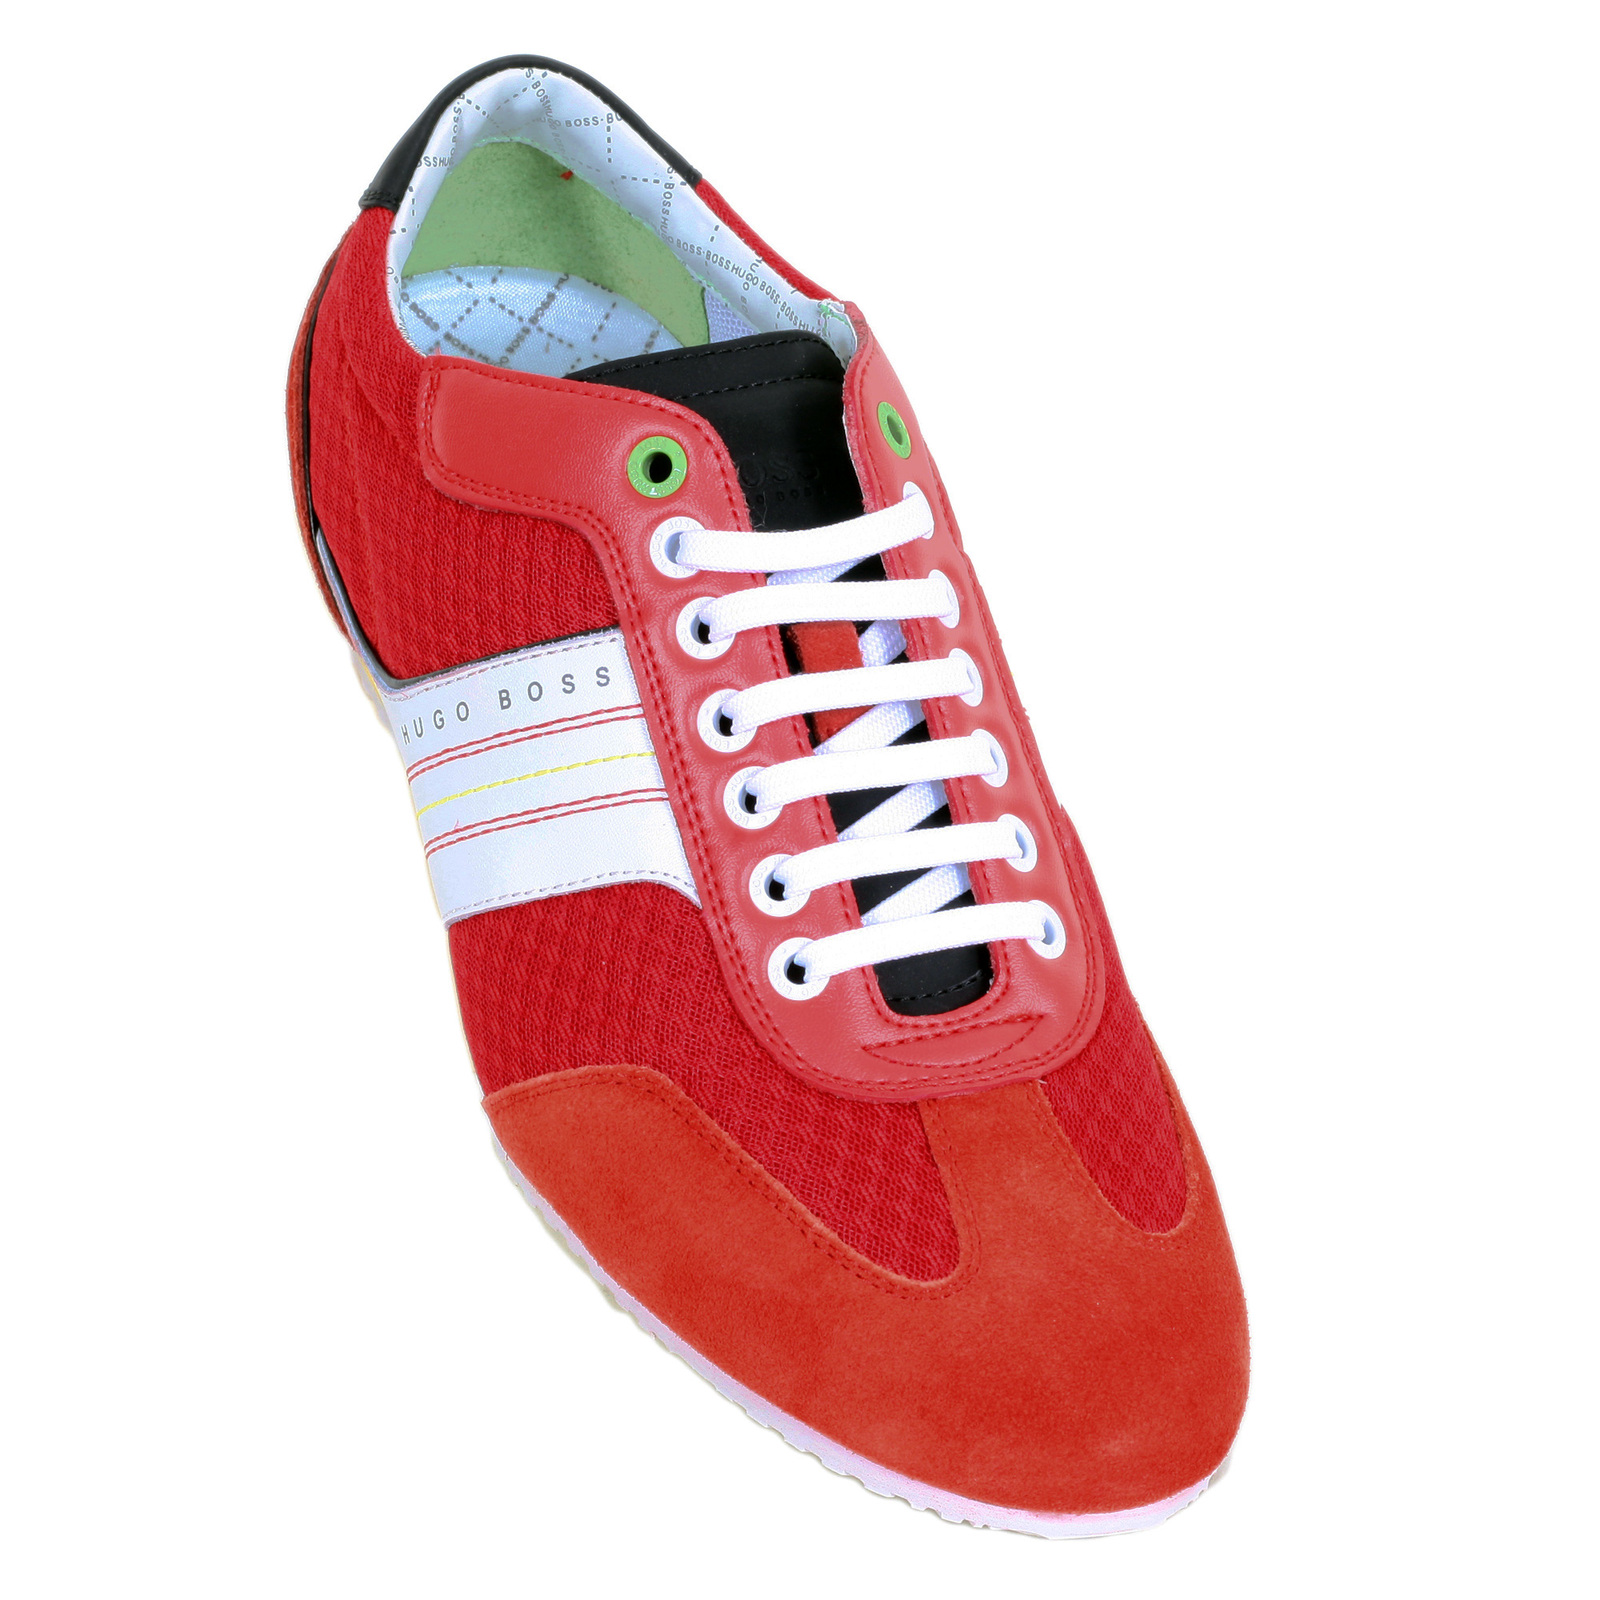 0f39f70e7c Round Toe Victov Hugo Boss Green Trainers in Bright Red with Low Top Design  BOSS5878